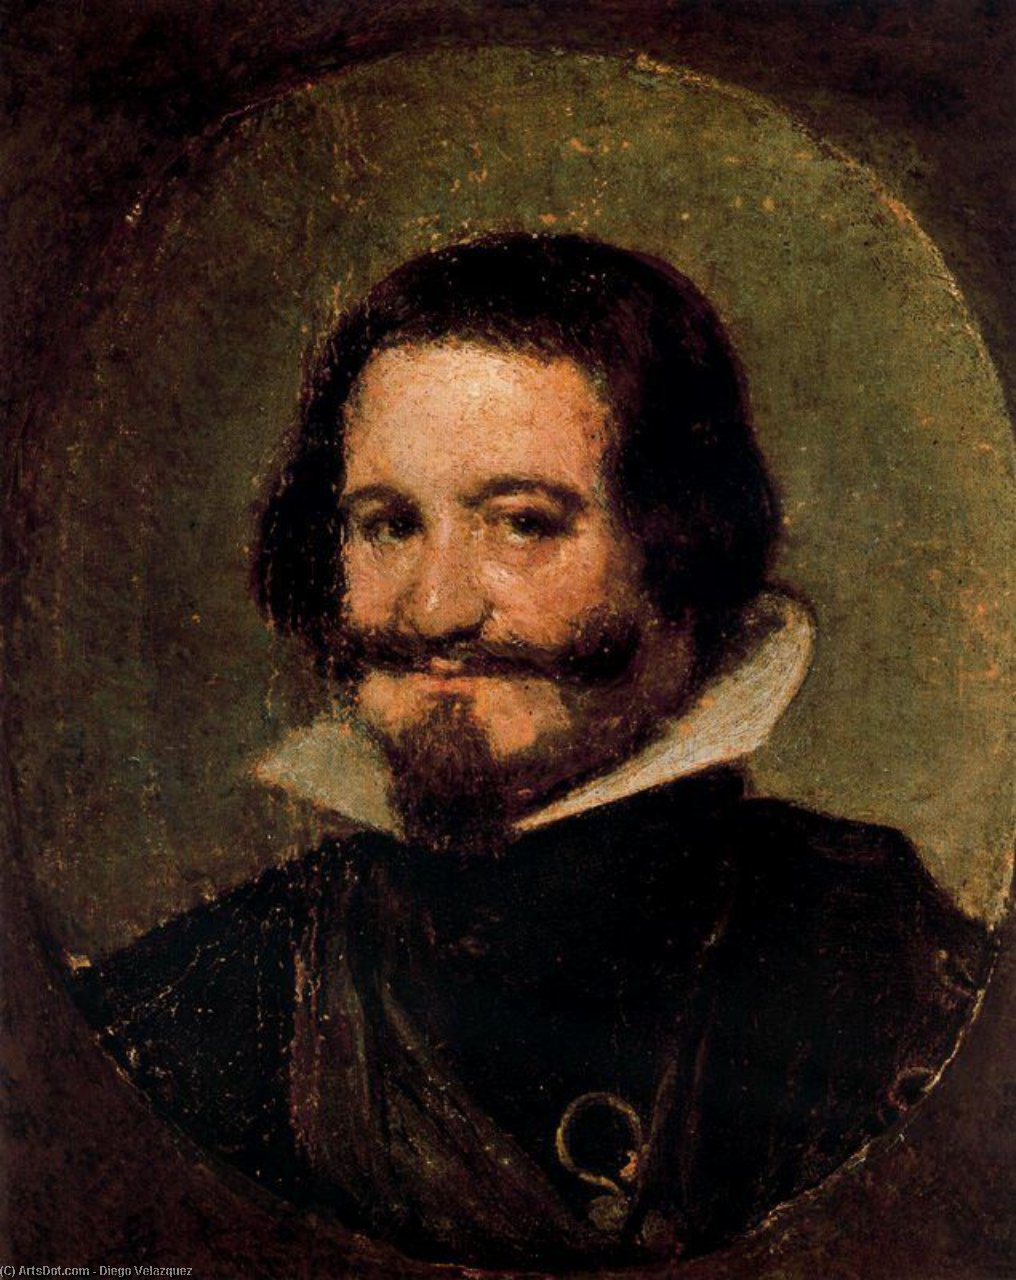 Conde-Duque de Olivares, Oil by Diego Velazquez (1599-1660, Spain)